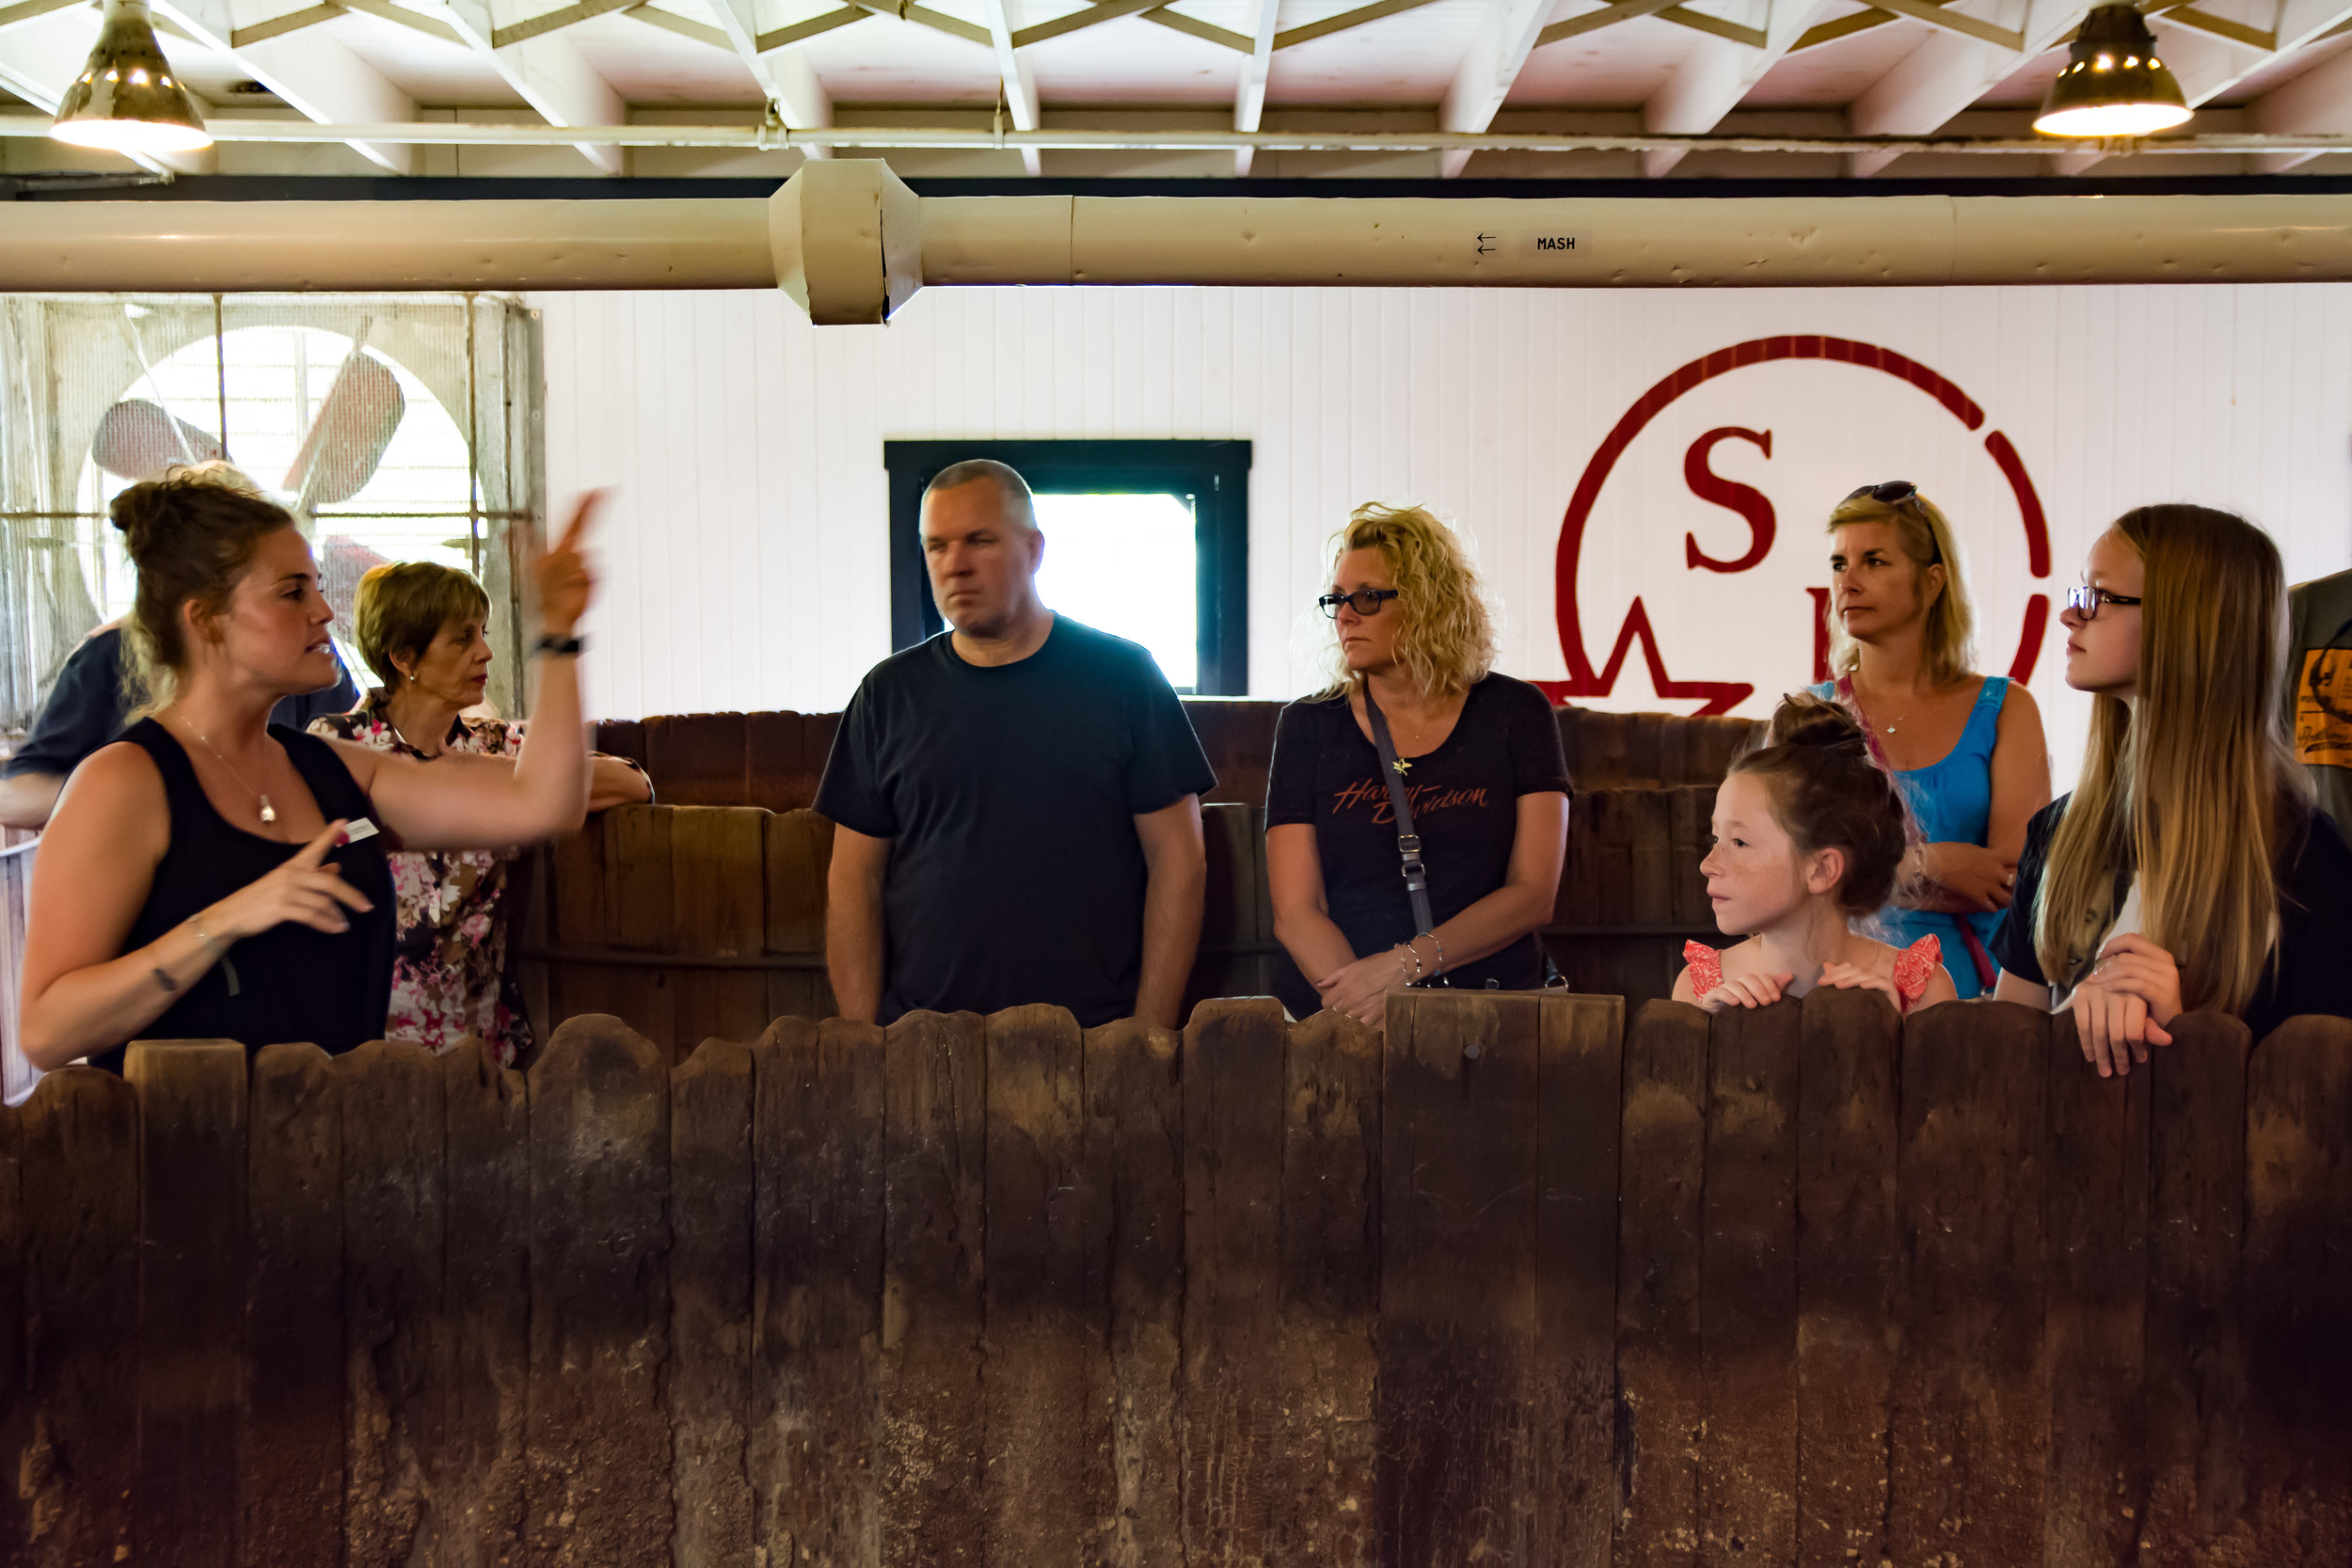 The girls learning about distilling by the 100+ year-old vats. I will be checking their room for stills...